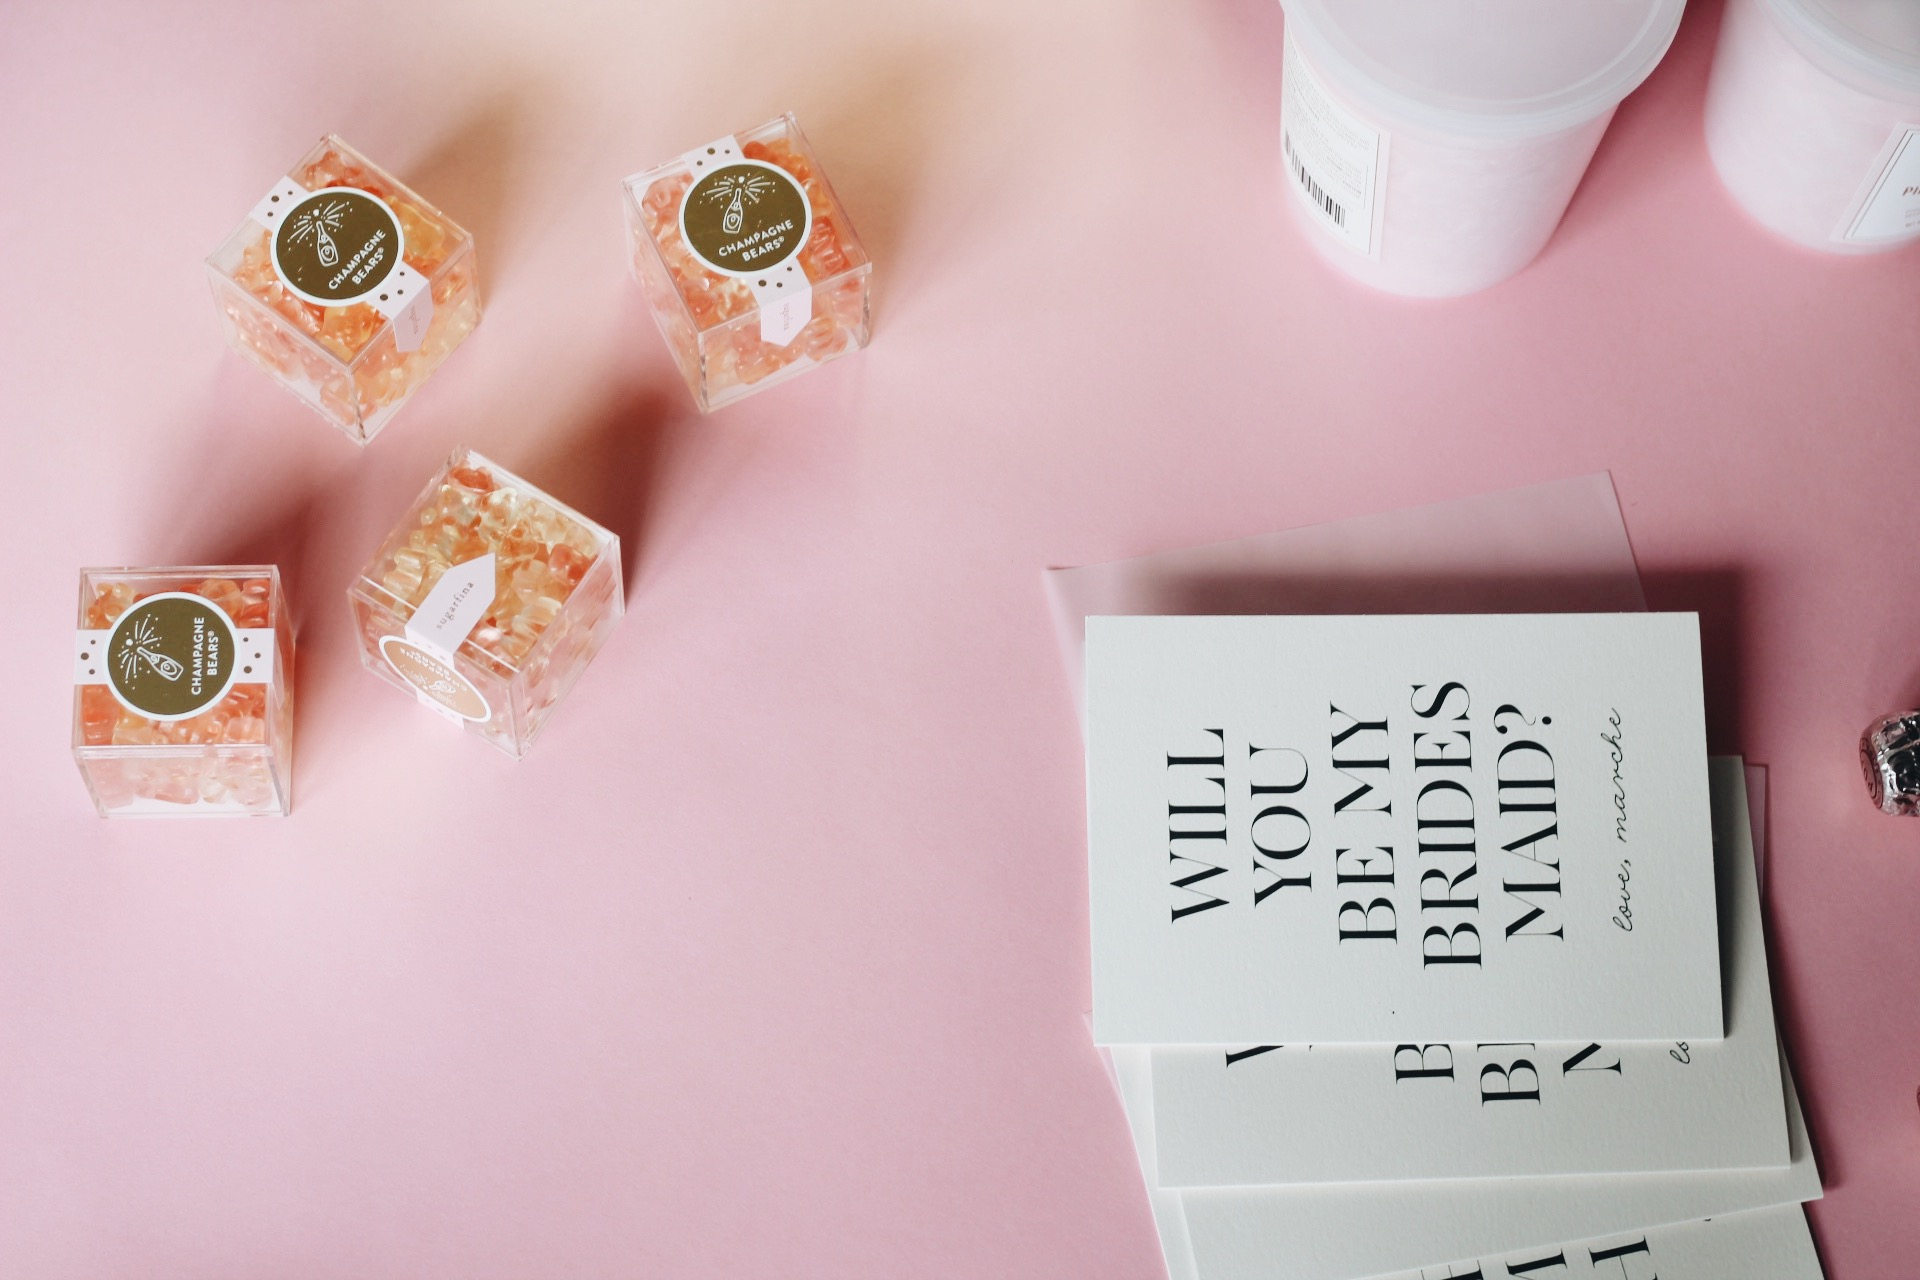 How-I-asked-my-bridesmaids-etsy-champagne-pop-lolli-and-pops-sugarfina-paper-source-4.JPG